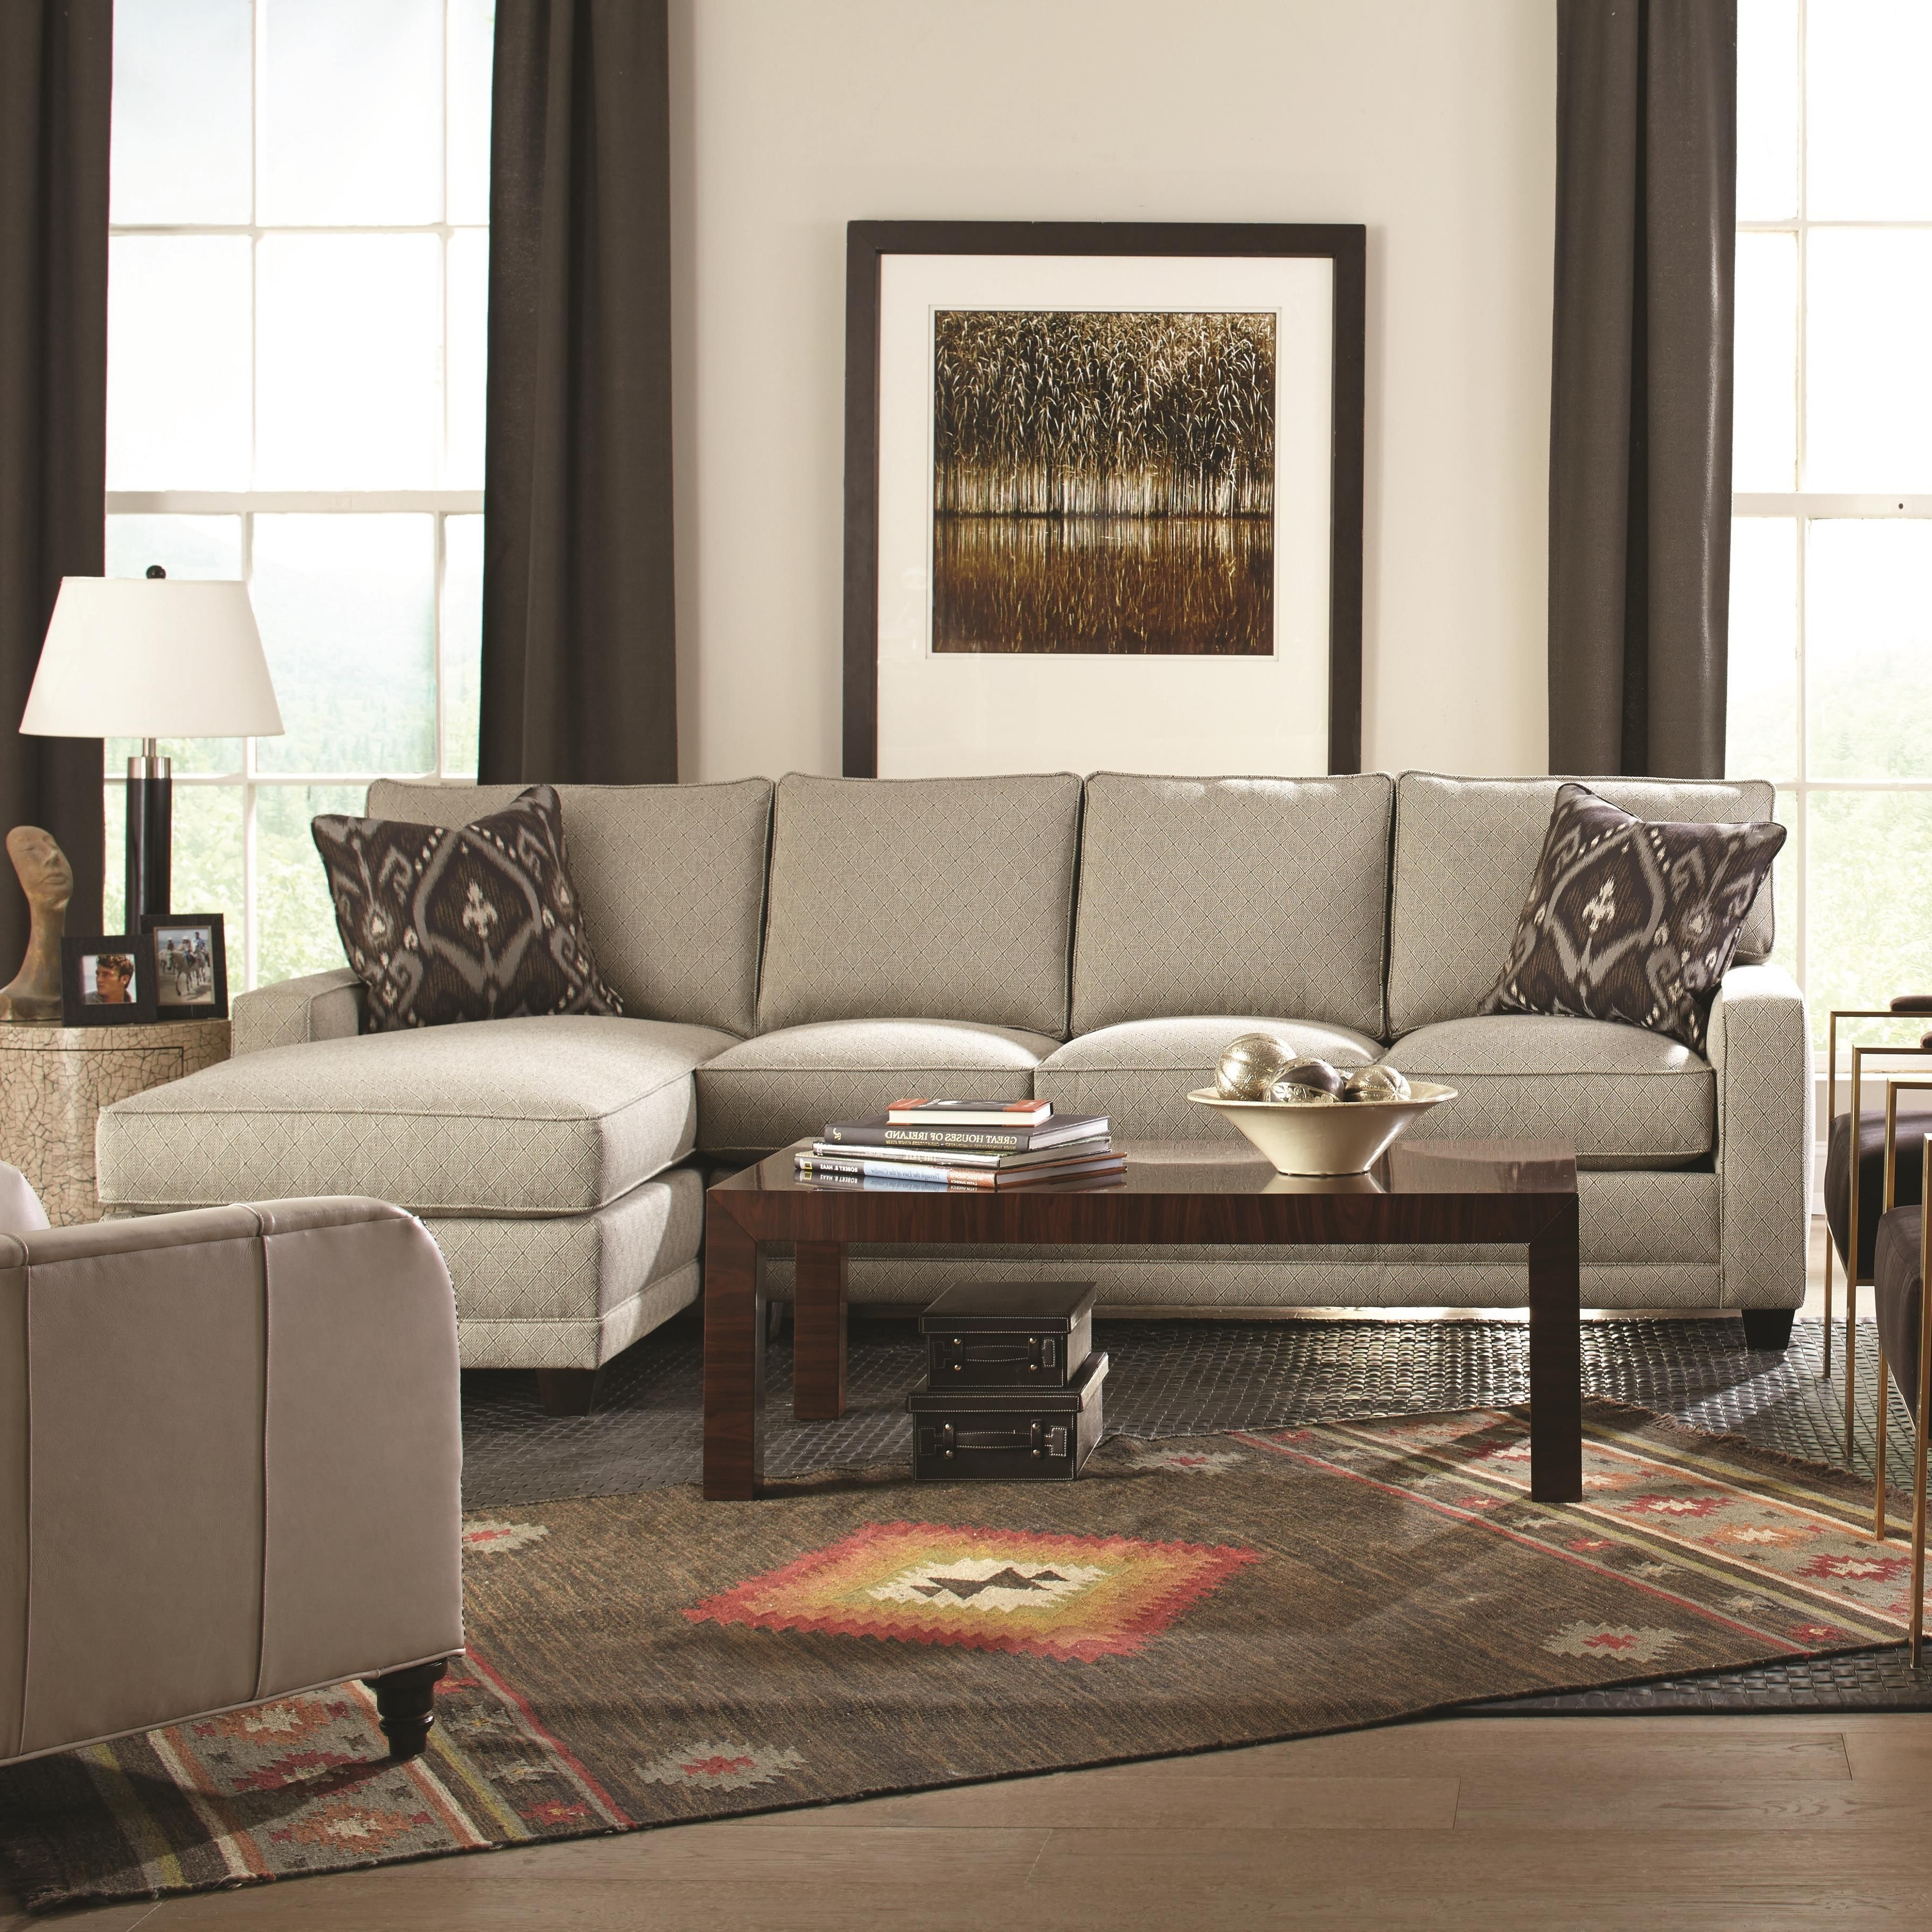 Living Pertaining To Most Popular Virginia Sectional Sofas (View 8 of 15)